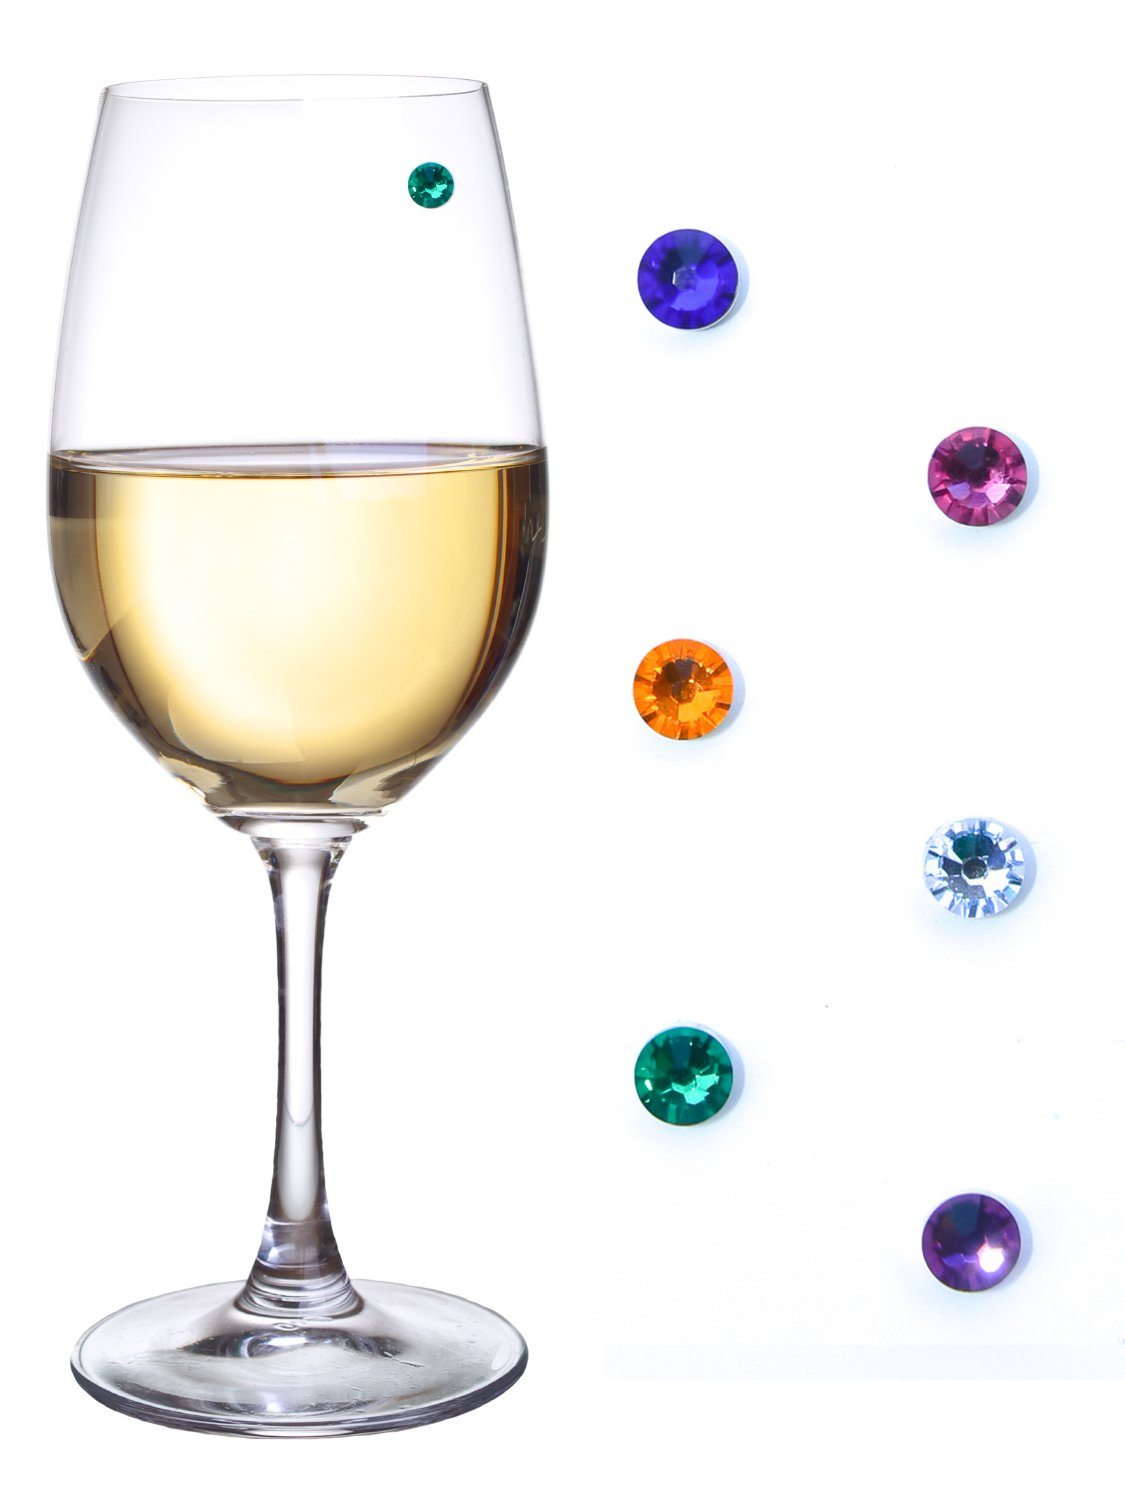 Swarovski Crystal Magnetic Wine Glass Charms for Stemless Glasses, Champagne Flutes & More – Set of 6 Jewel Colors